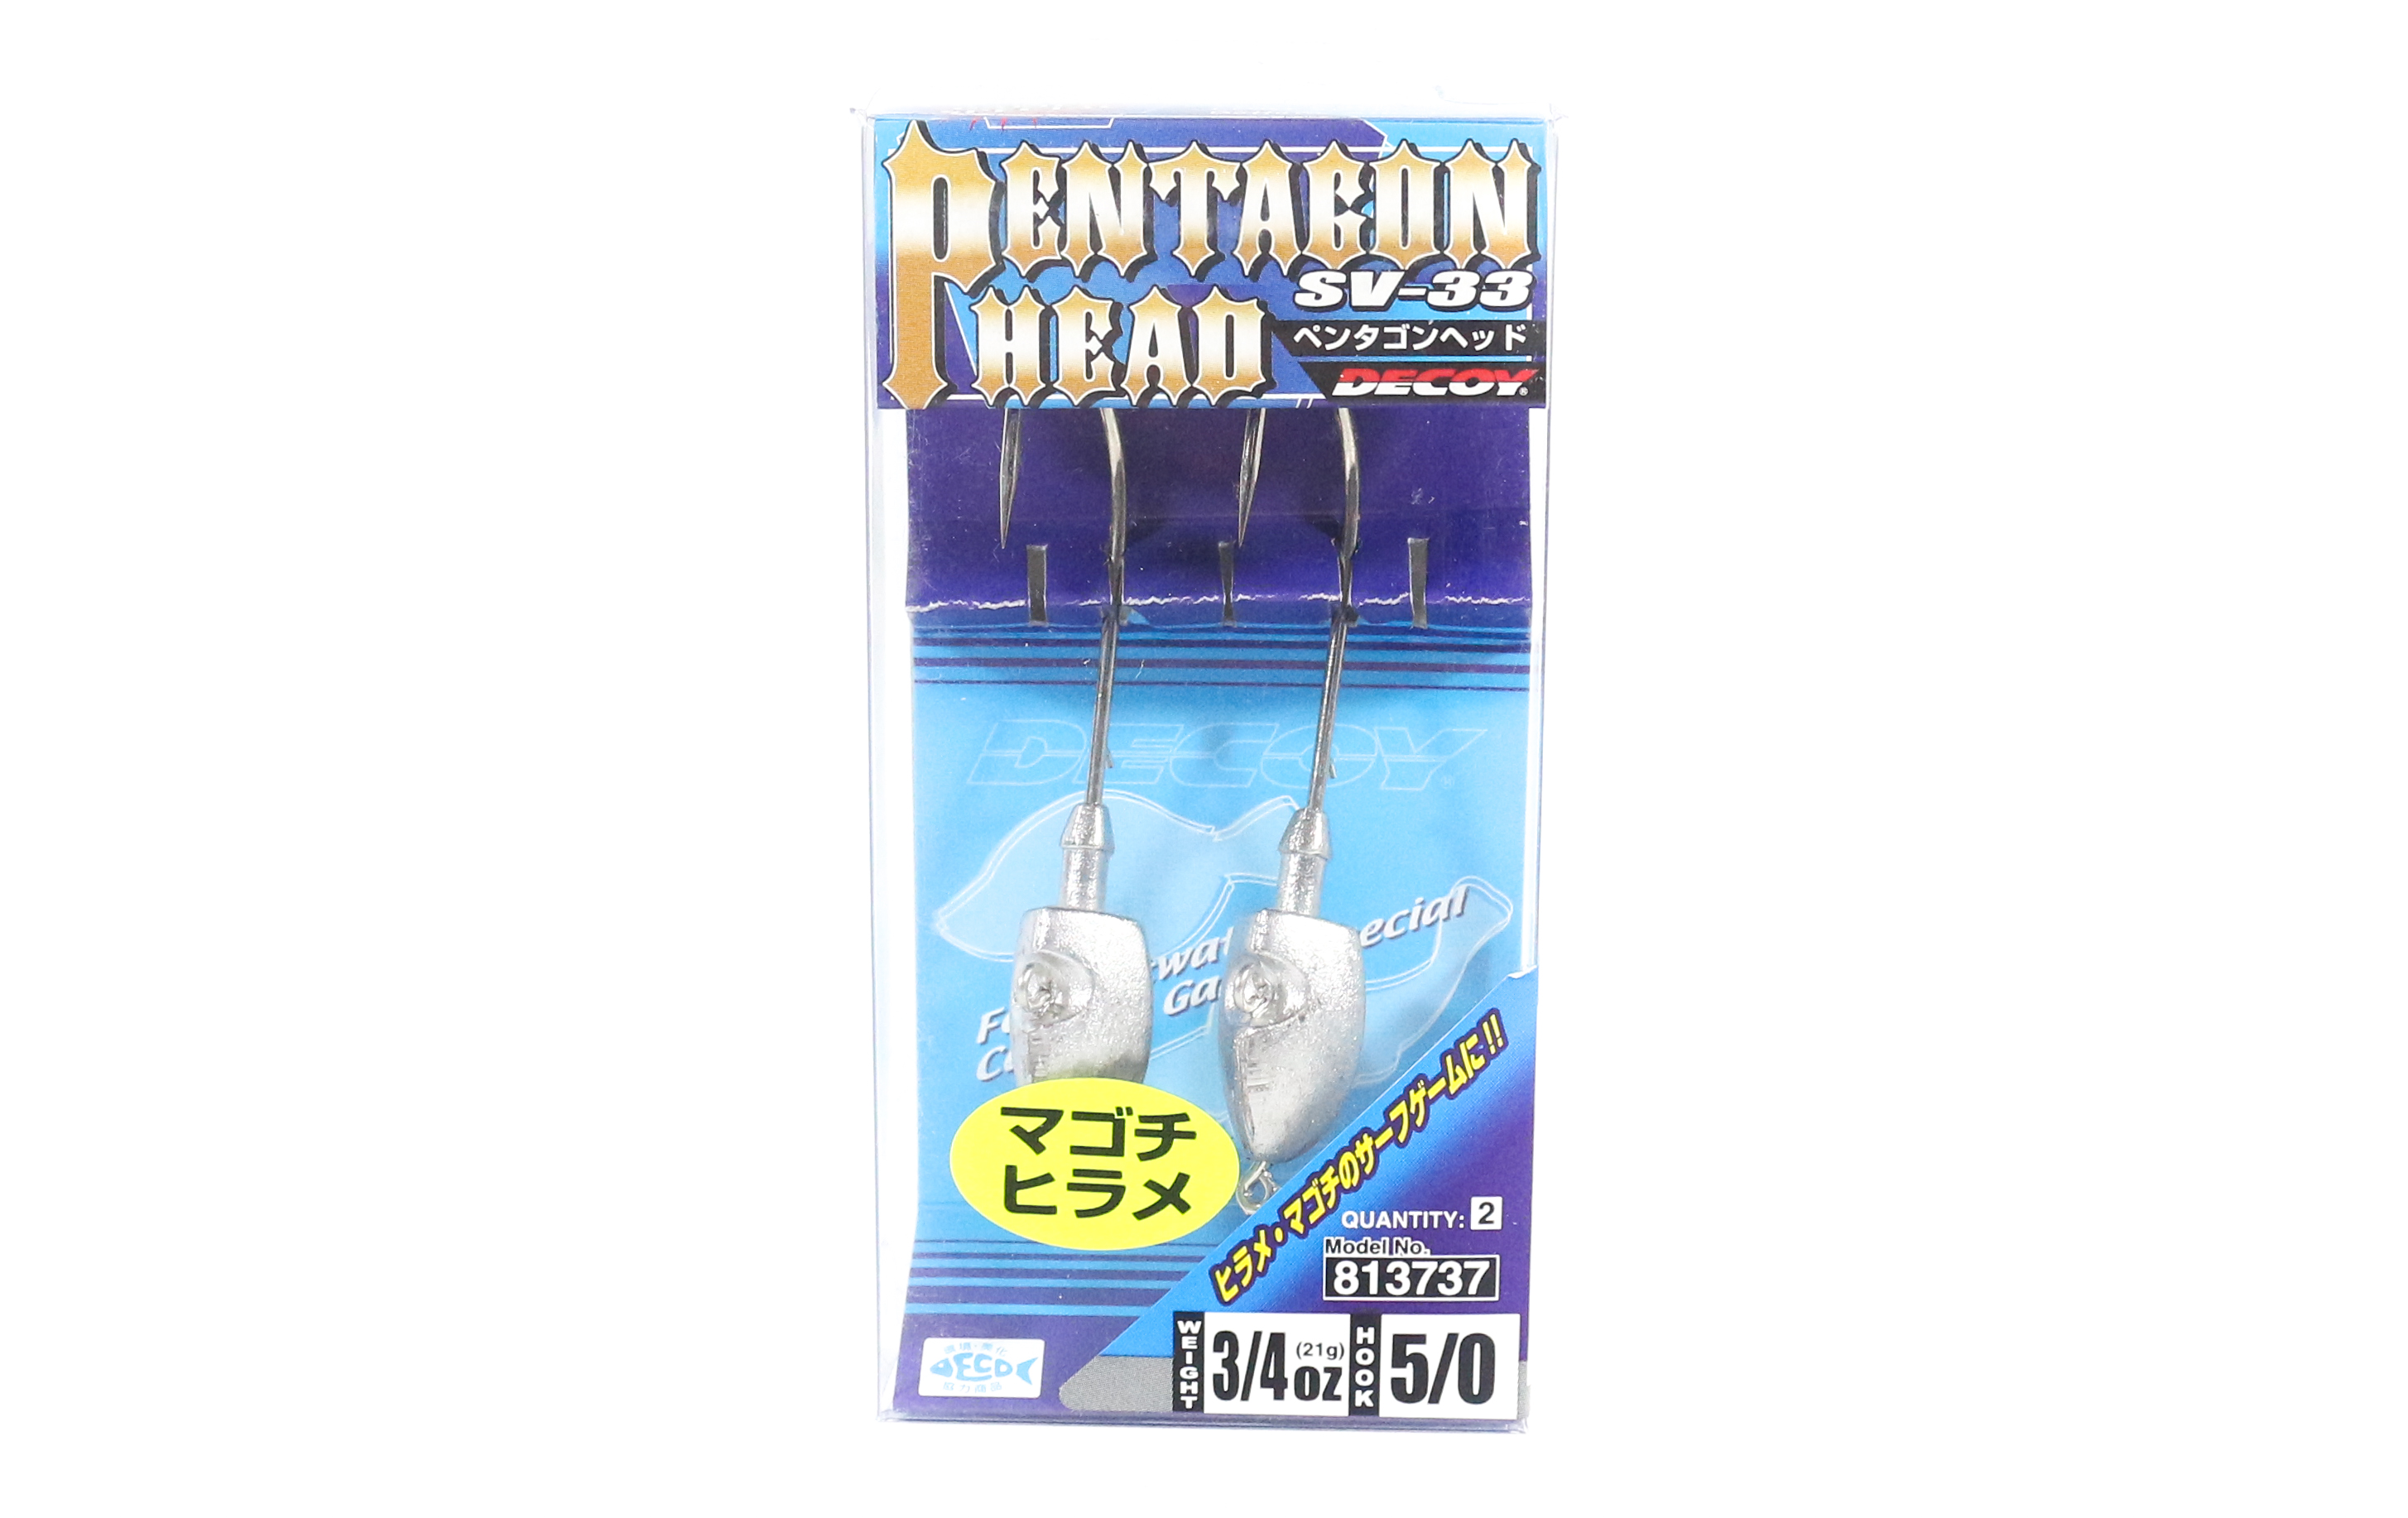 Decoy SV-33 Jig Head Pentagon Head Size 5/0 , 3/4 oz (3737)